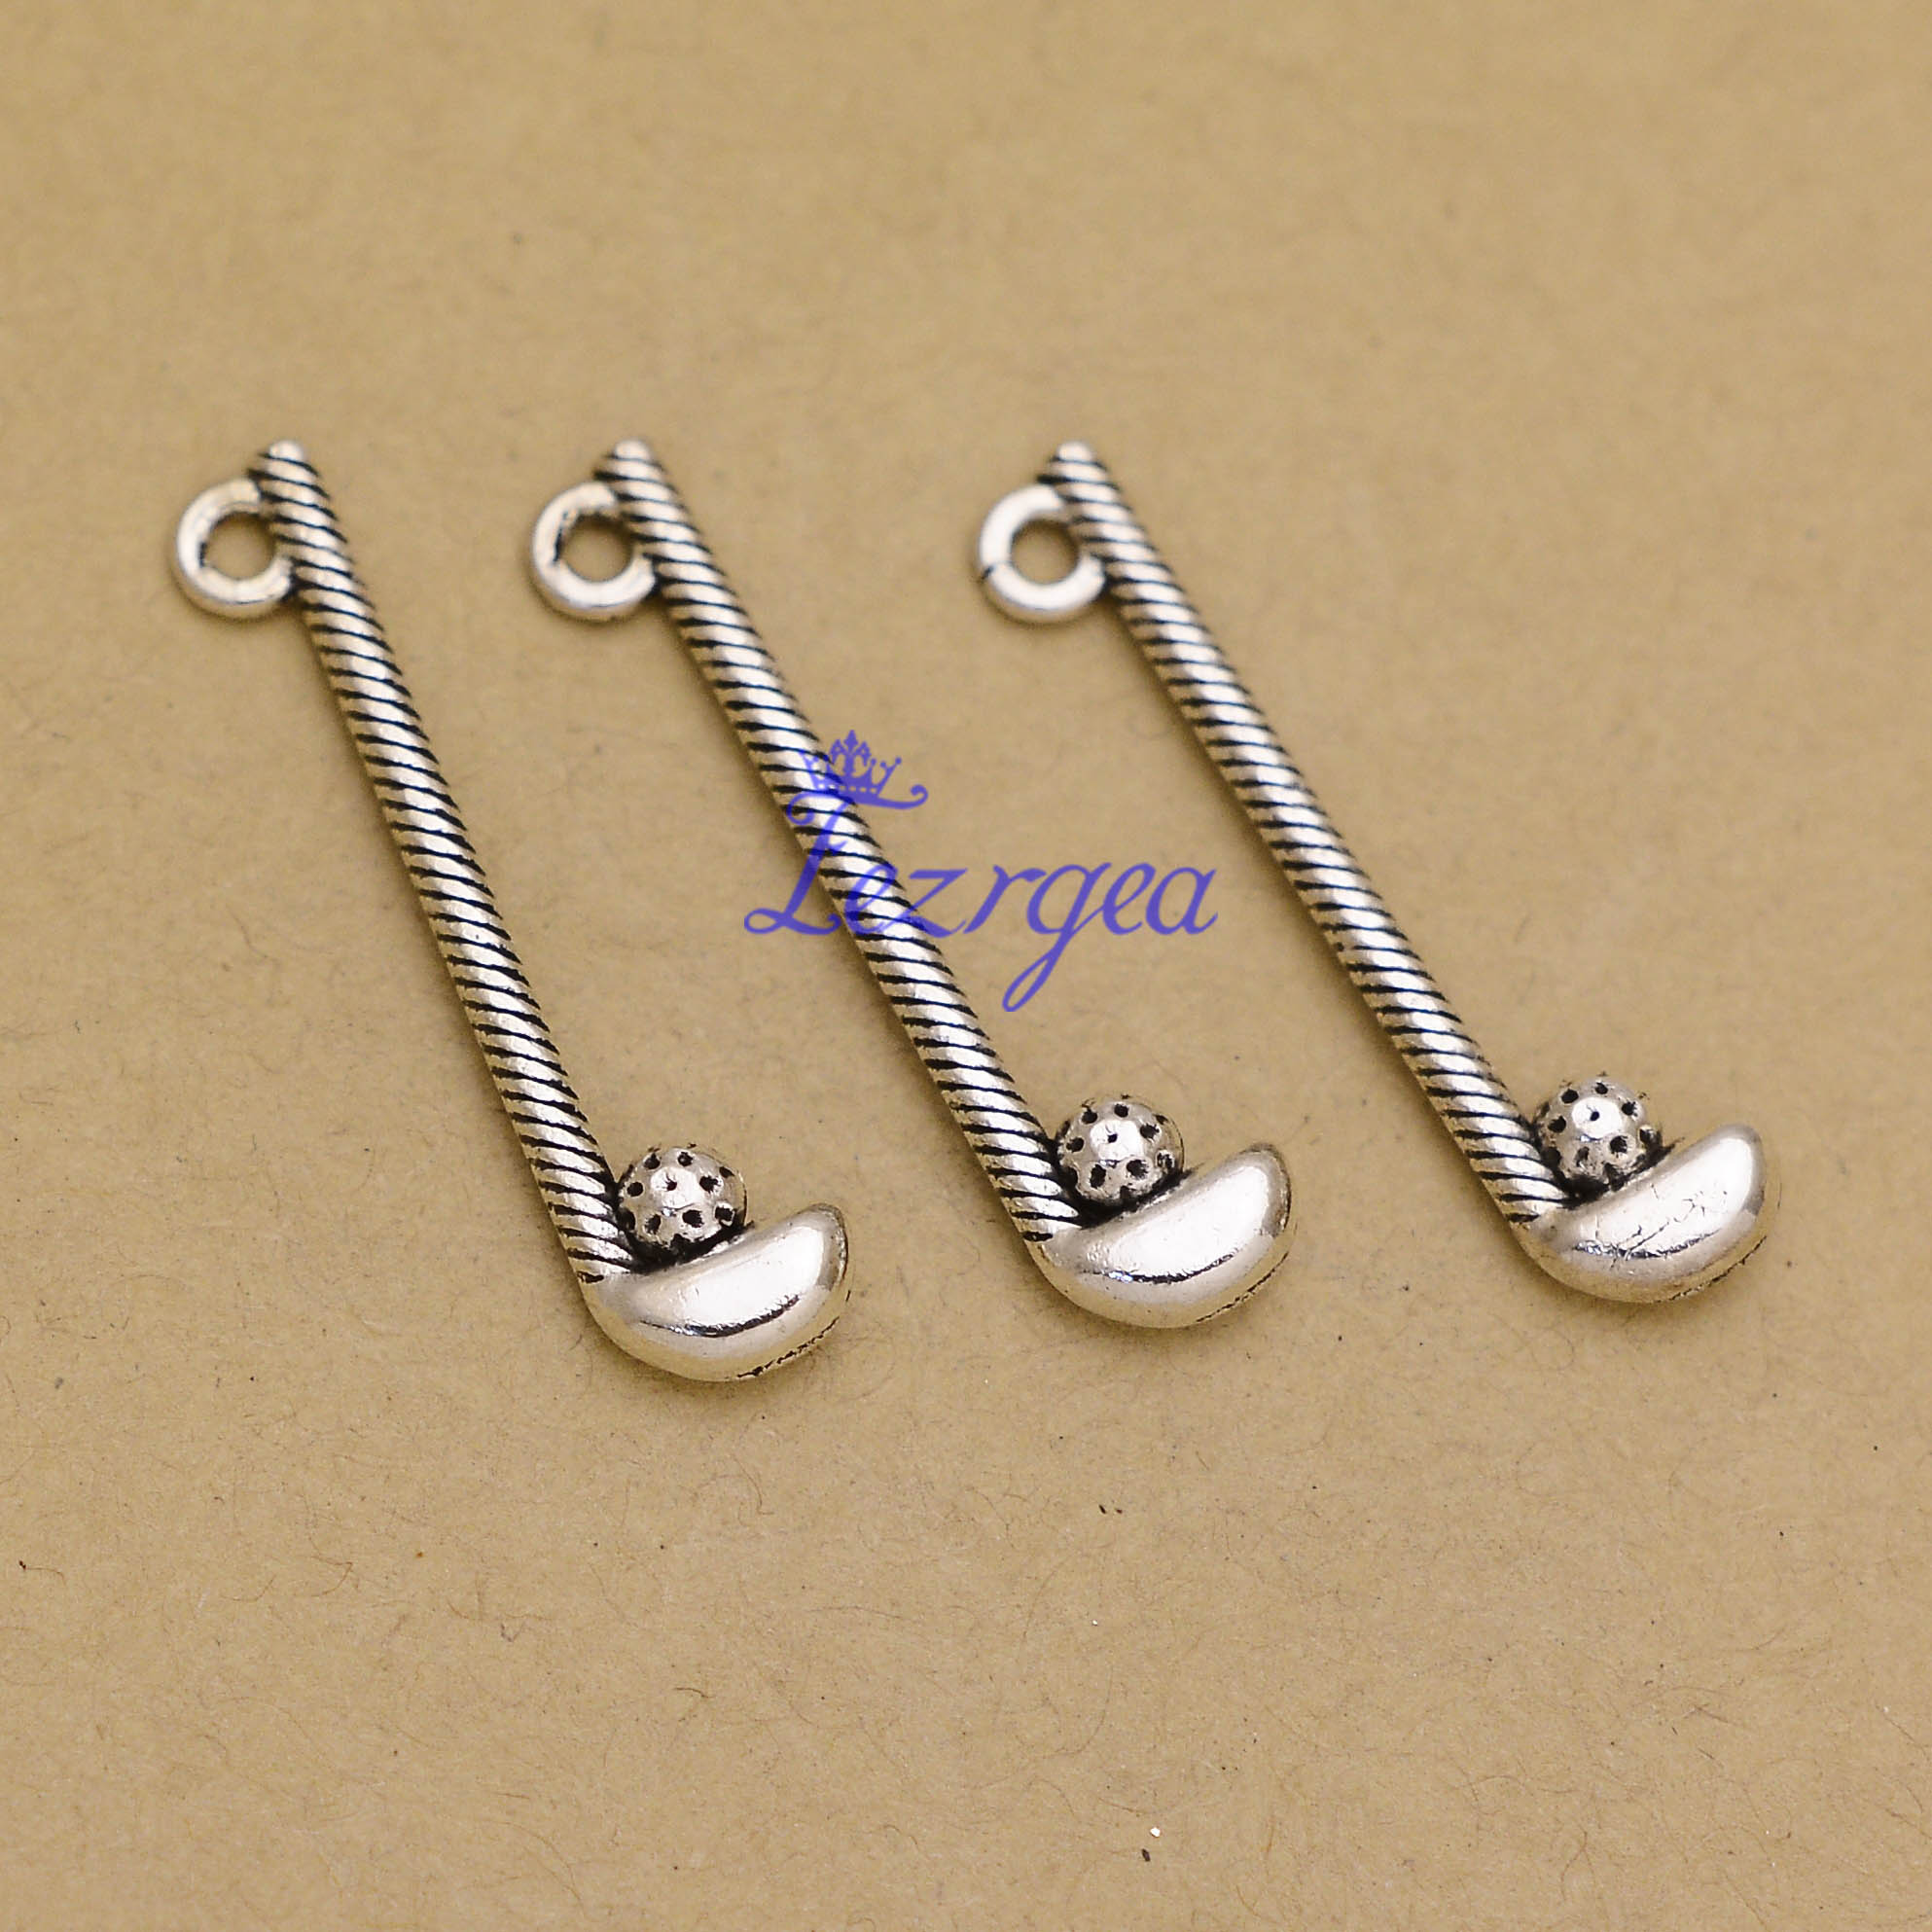 30pcs/lot--32x8mm, Antique silver plated golf club ball charms,DIY supplies,Jewelry accessories